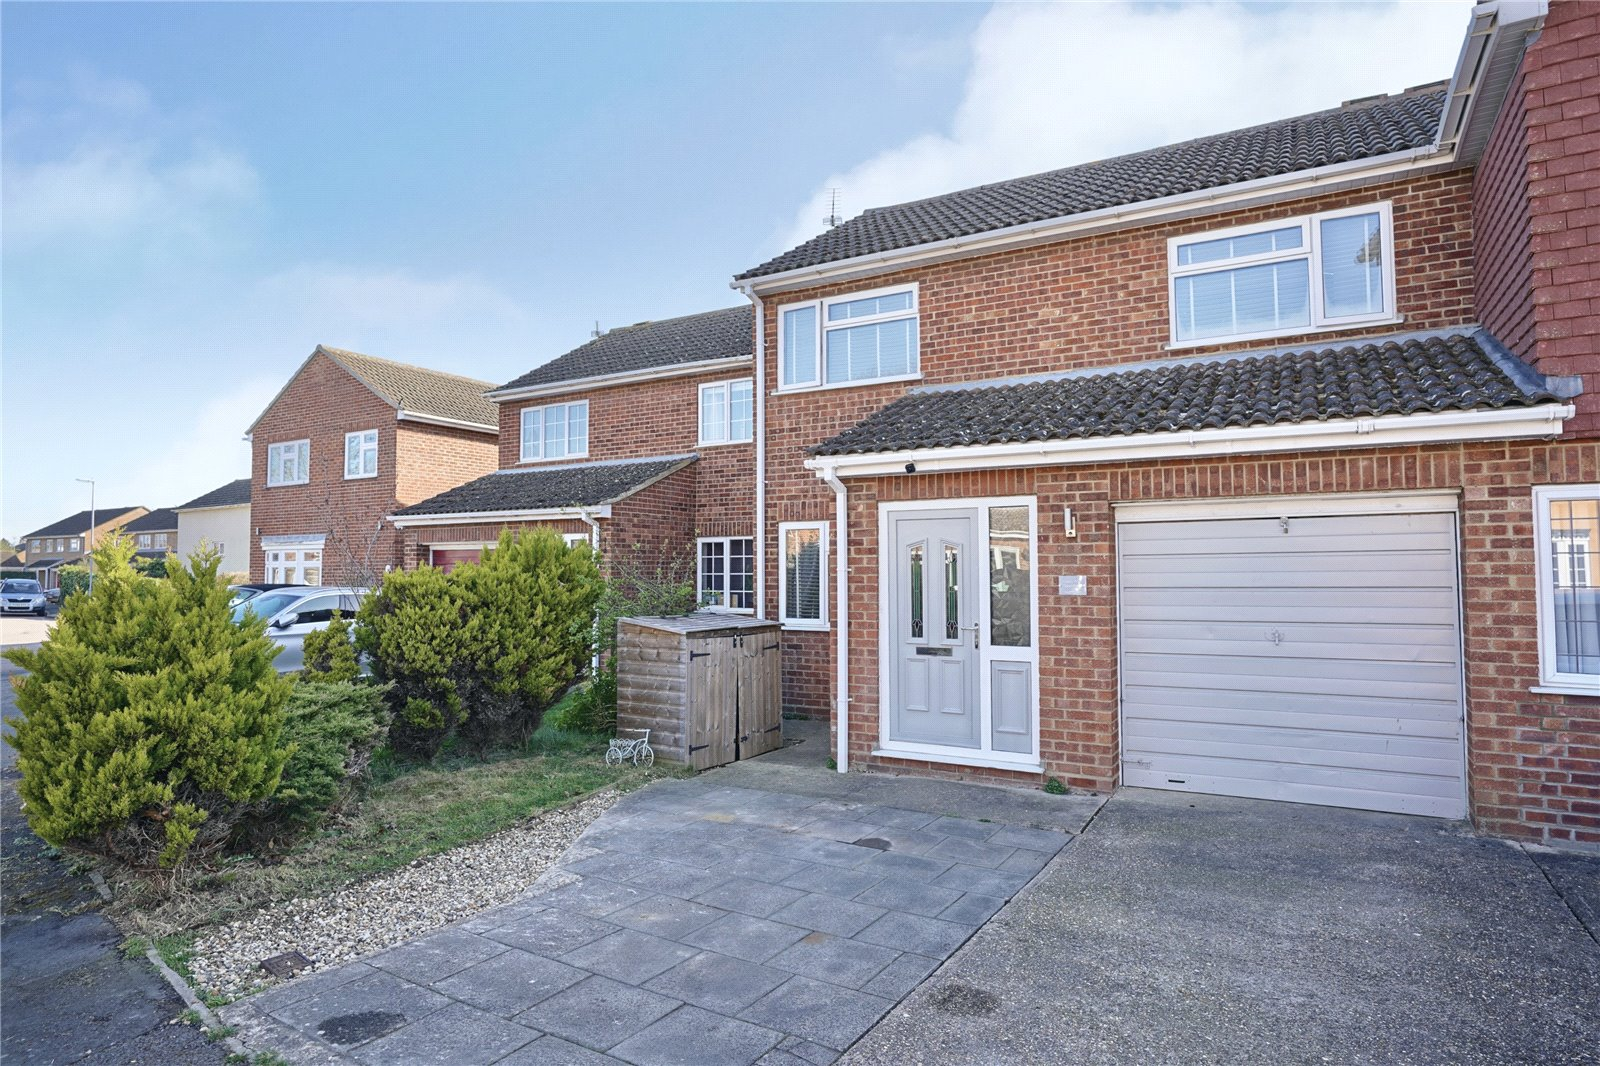 3 bed house for sale in Earith, PE28 3QY, PE28